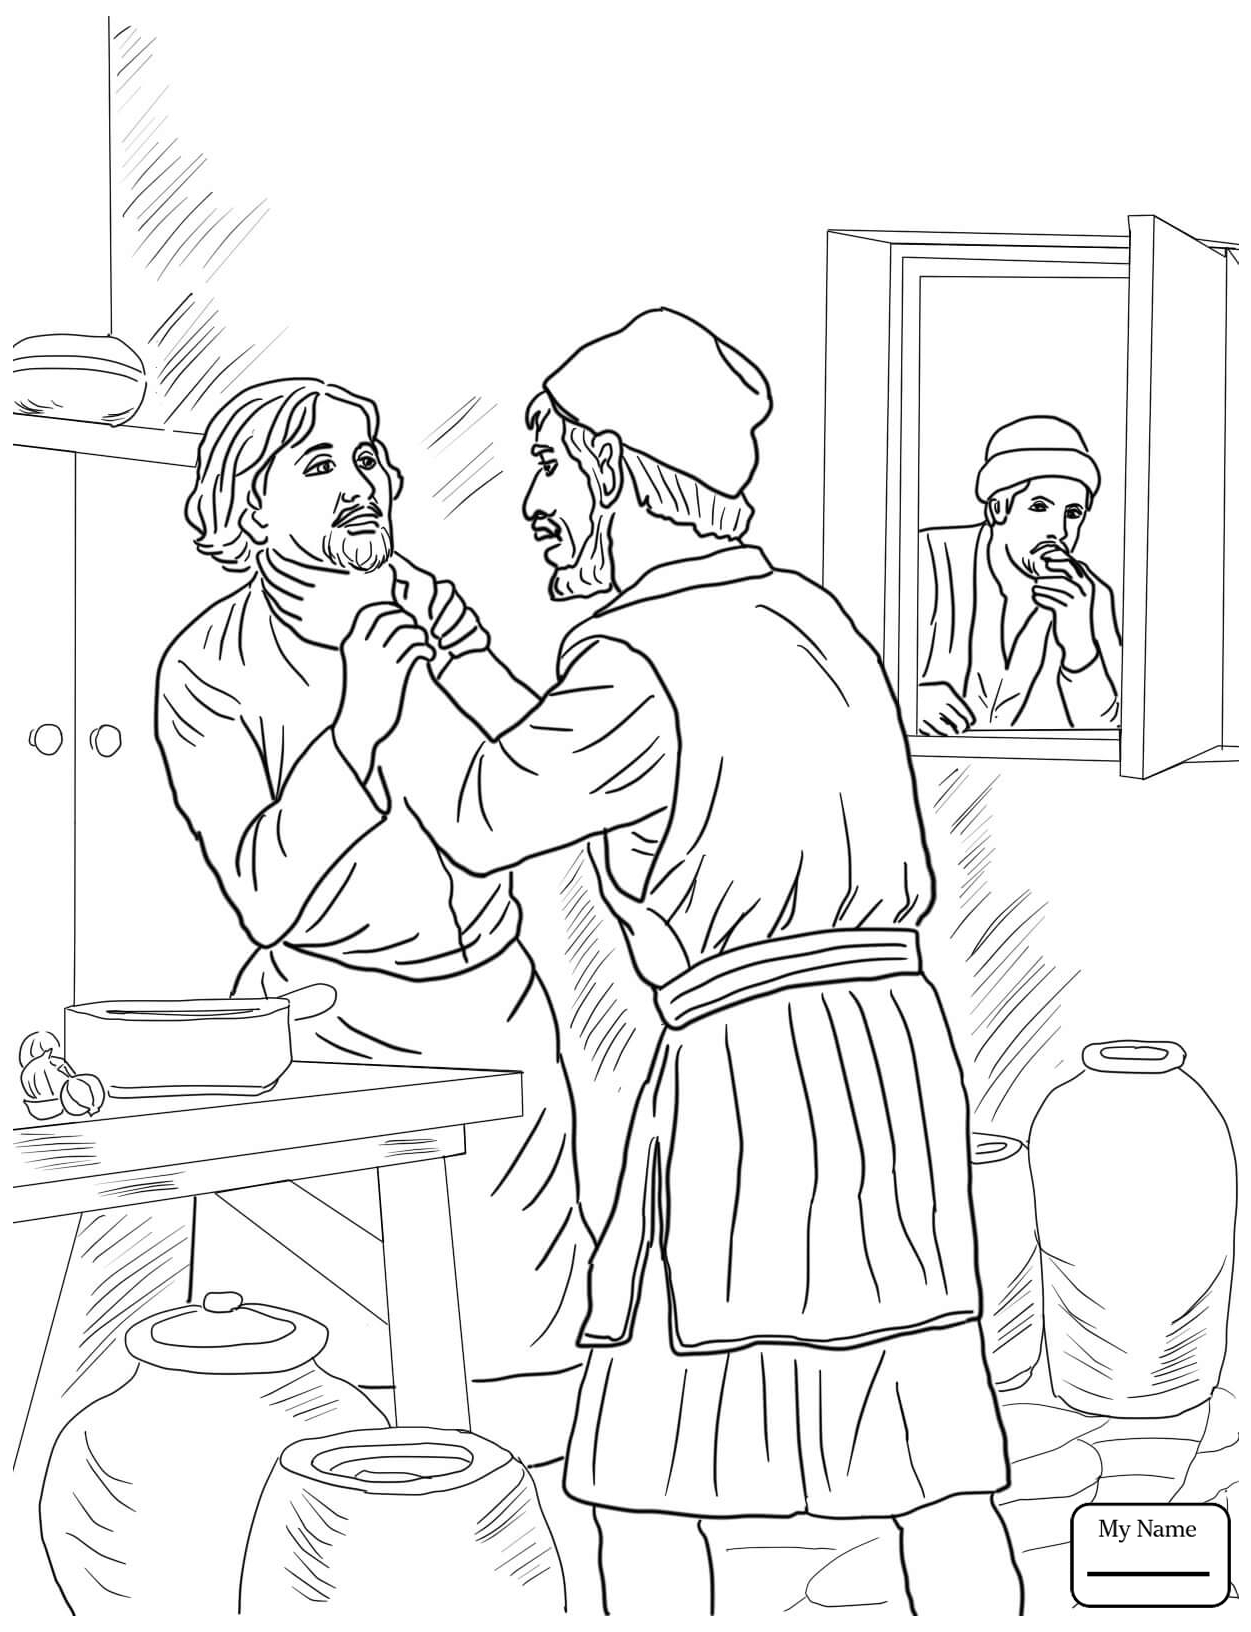 1251x1632 Coloring Pages For Kids Christianity Bible Jesus Parables Lazarus